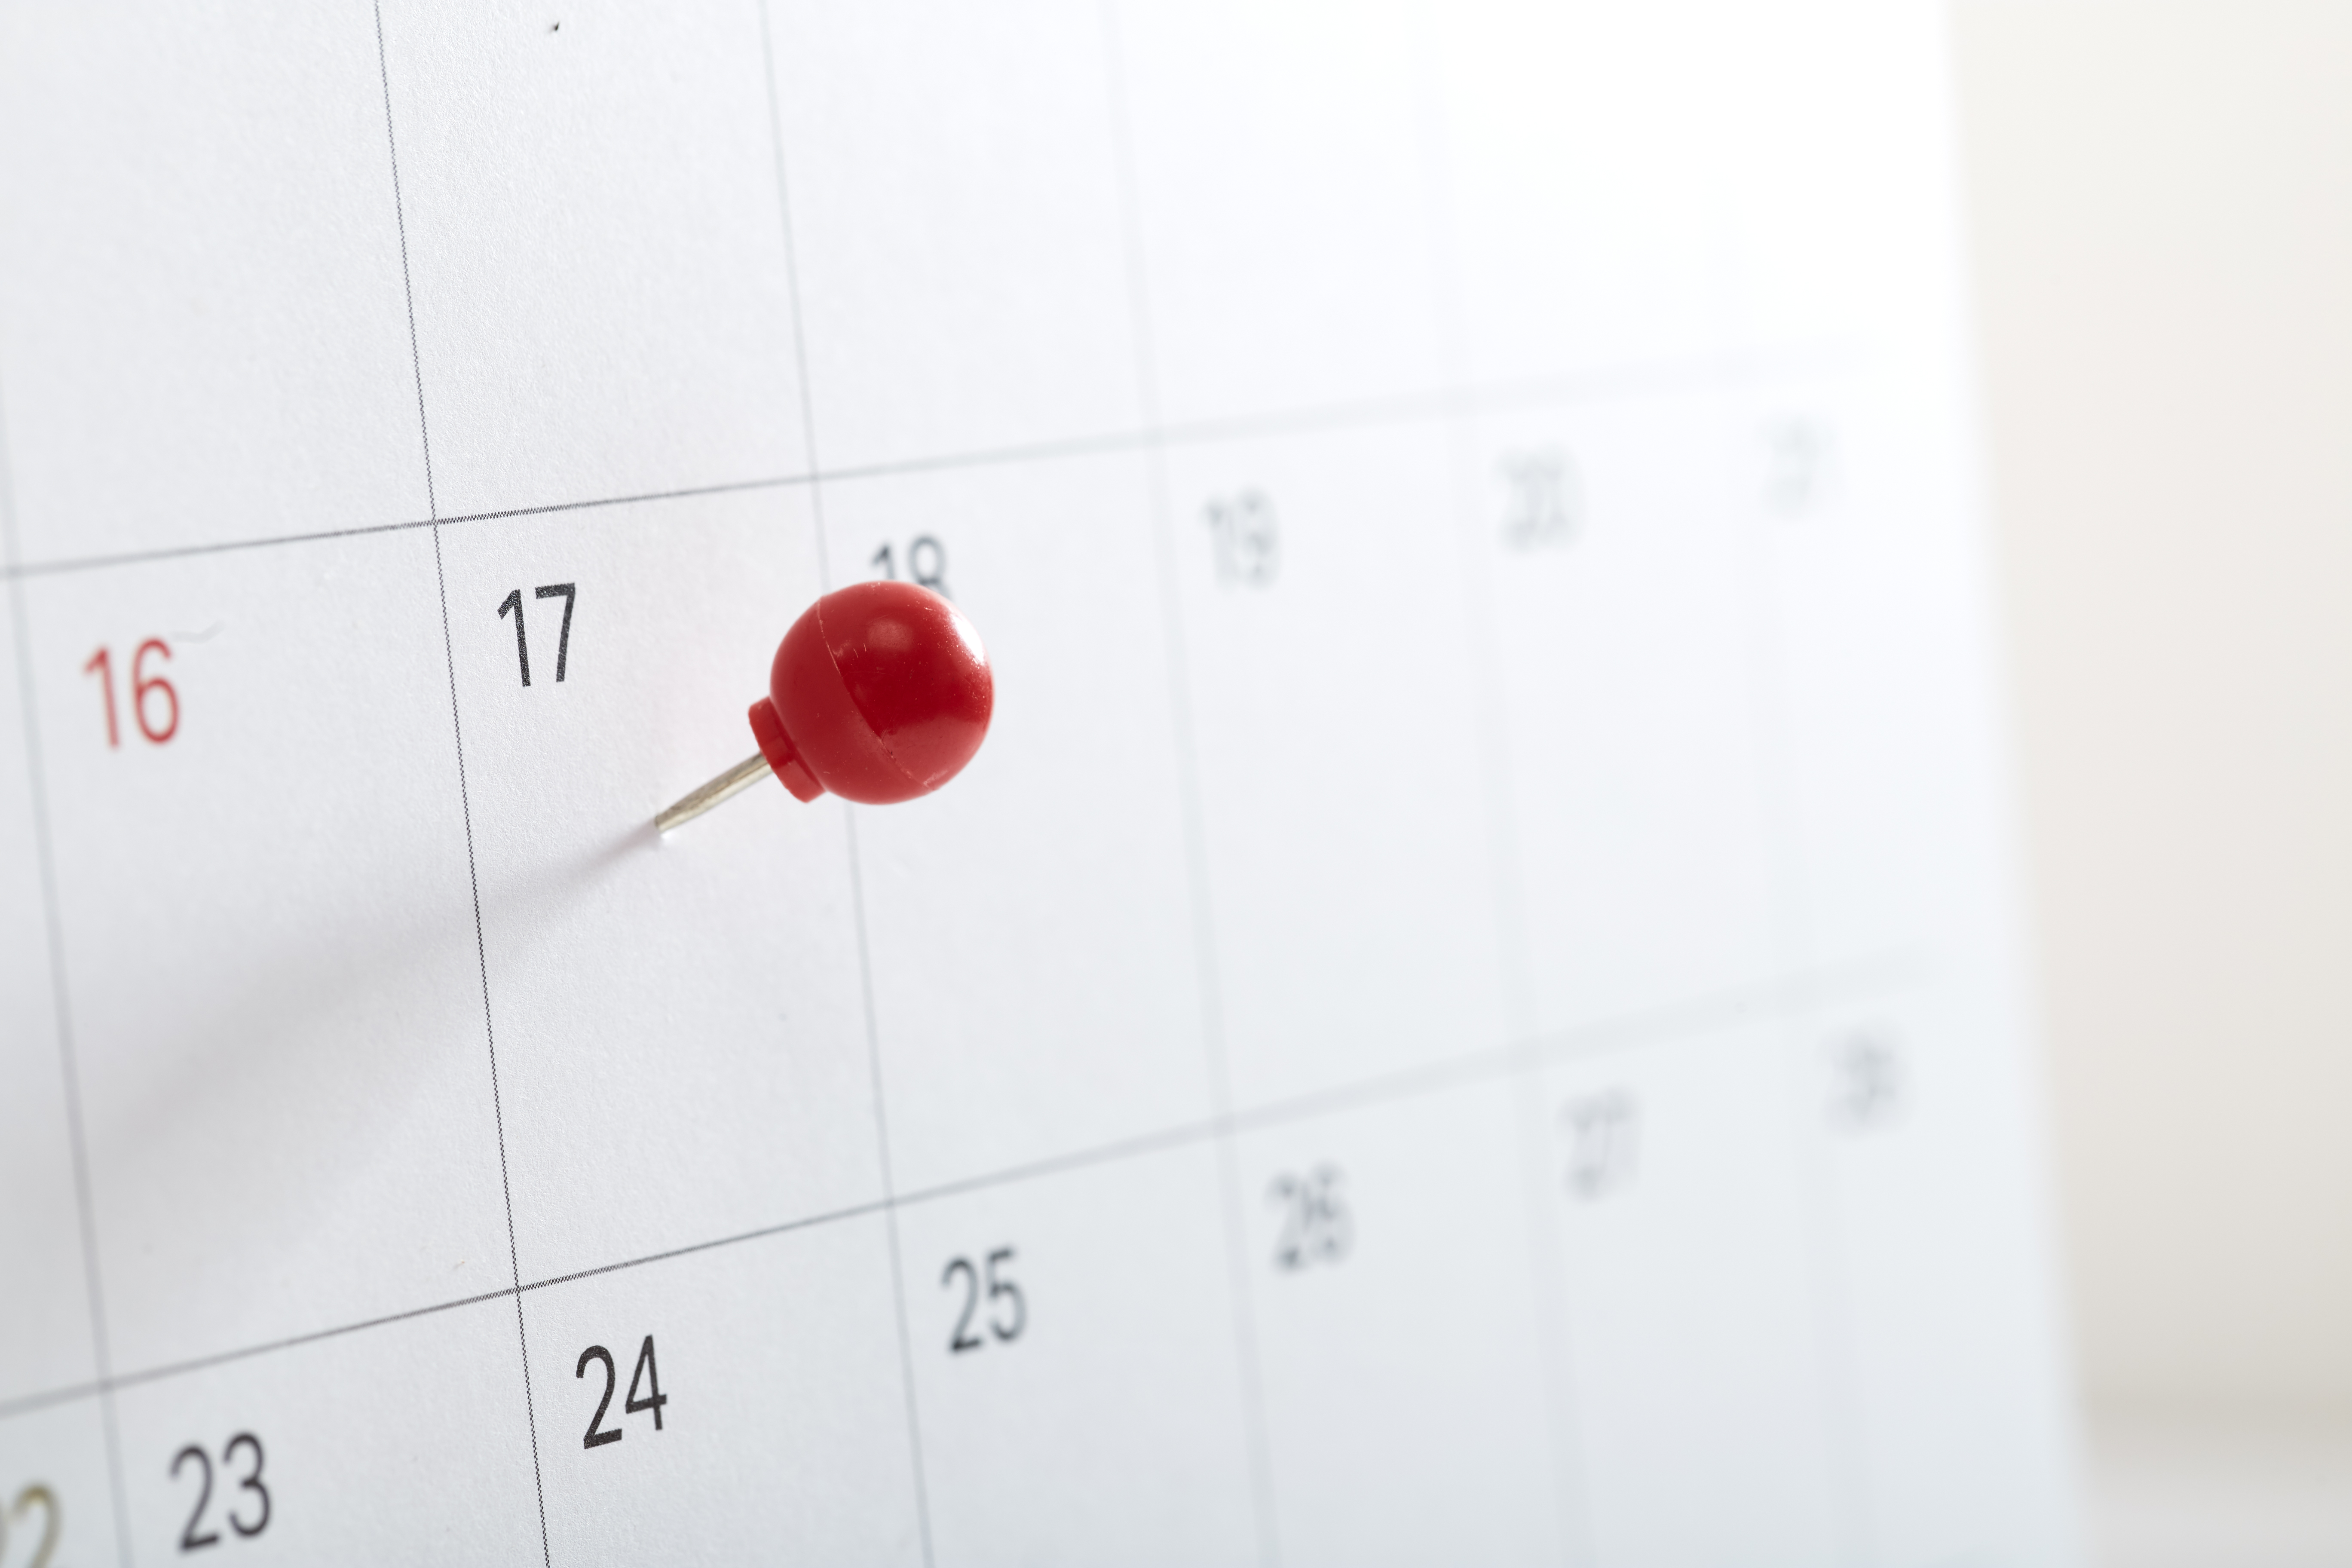 A red pin on calendar to remind about the appointment, Tax Day 2018 takes place on April 17, 2018